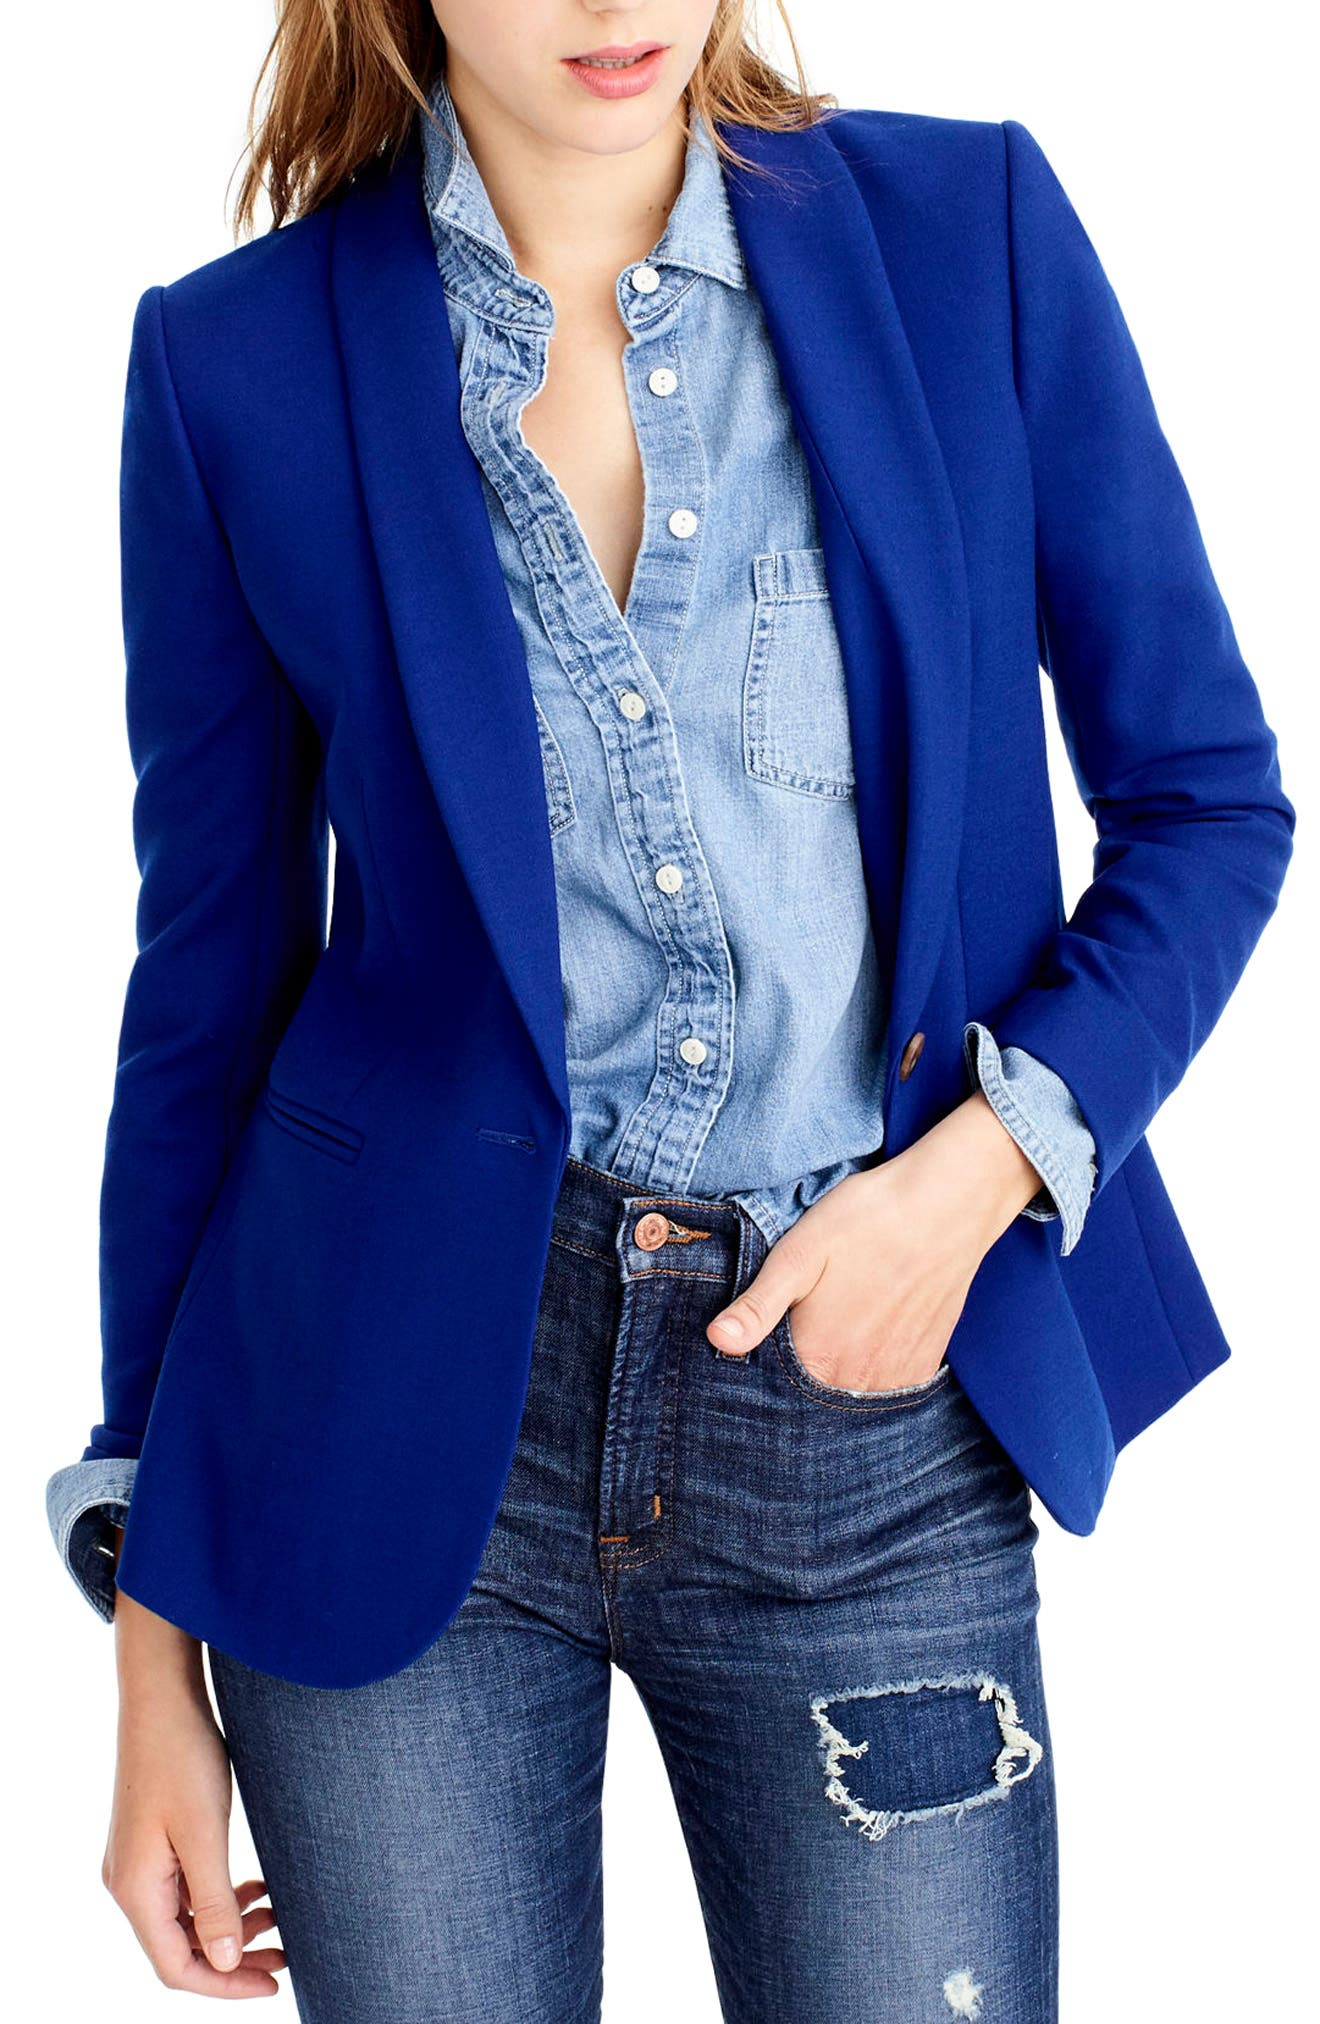 J.Crew Parke Blazer,                         Main,                         color, Bright Indigo